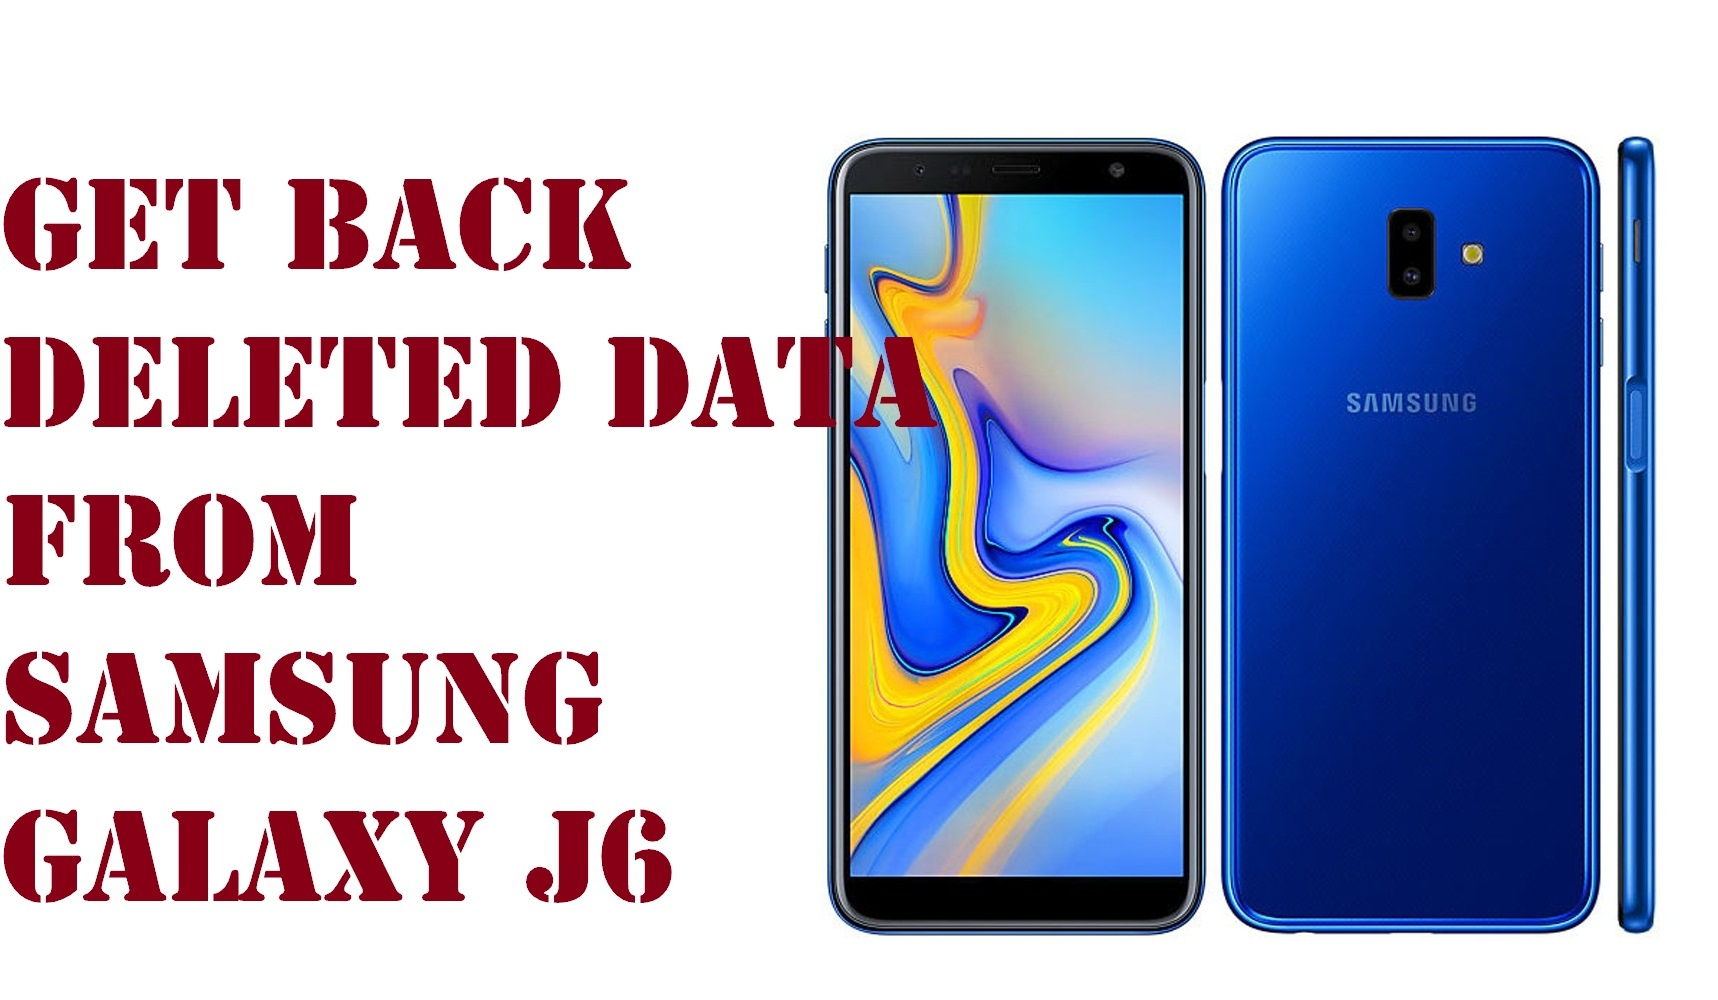 Bets tips to get back deleted data from Samsung Galaxy J6 Plus